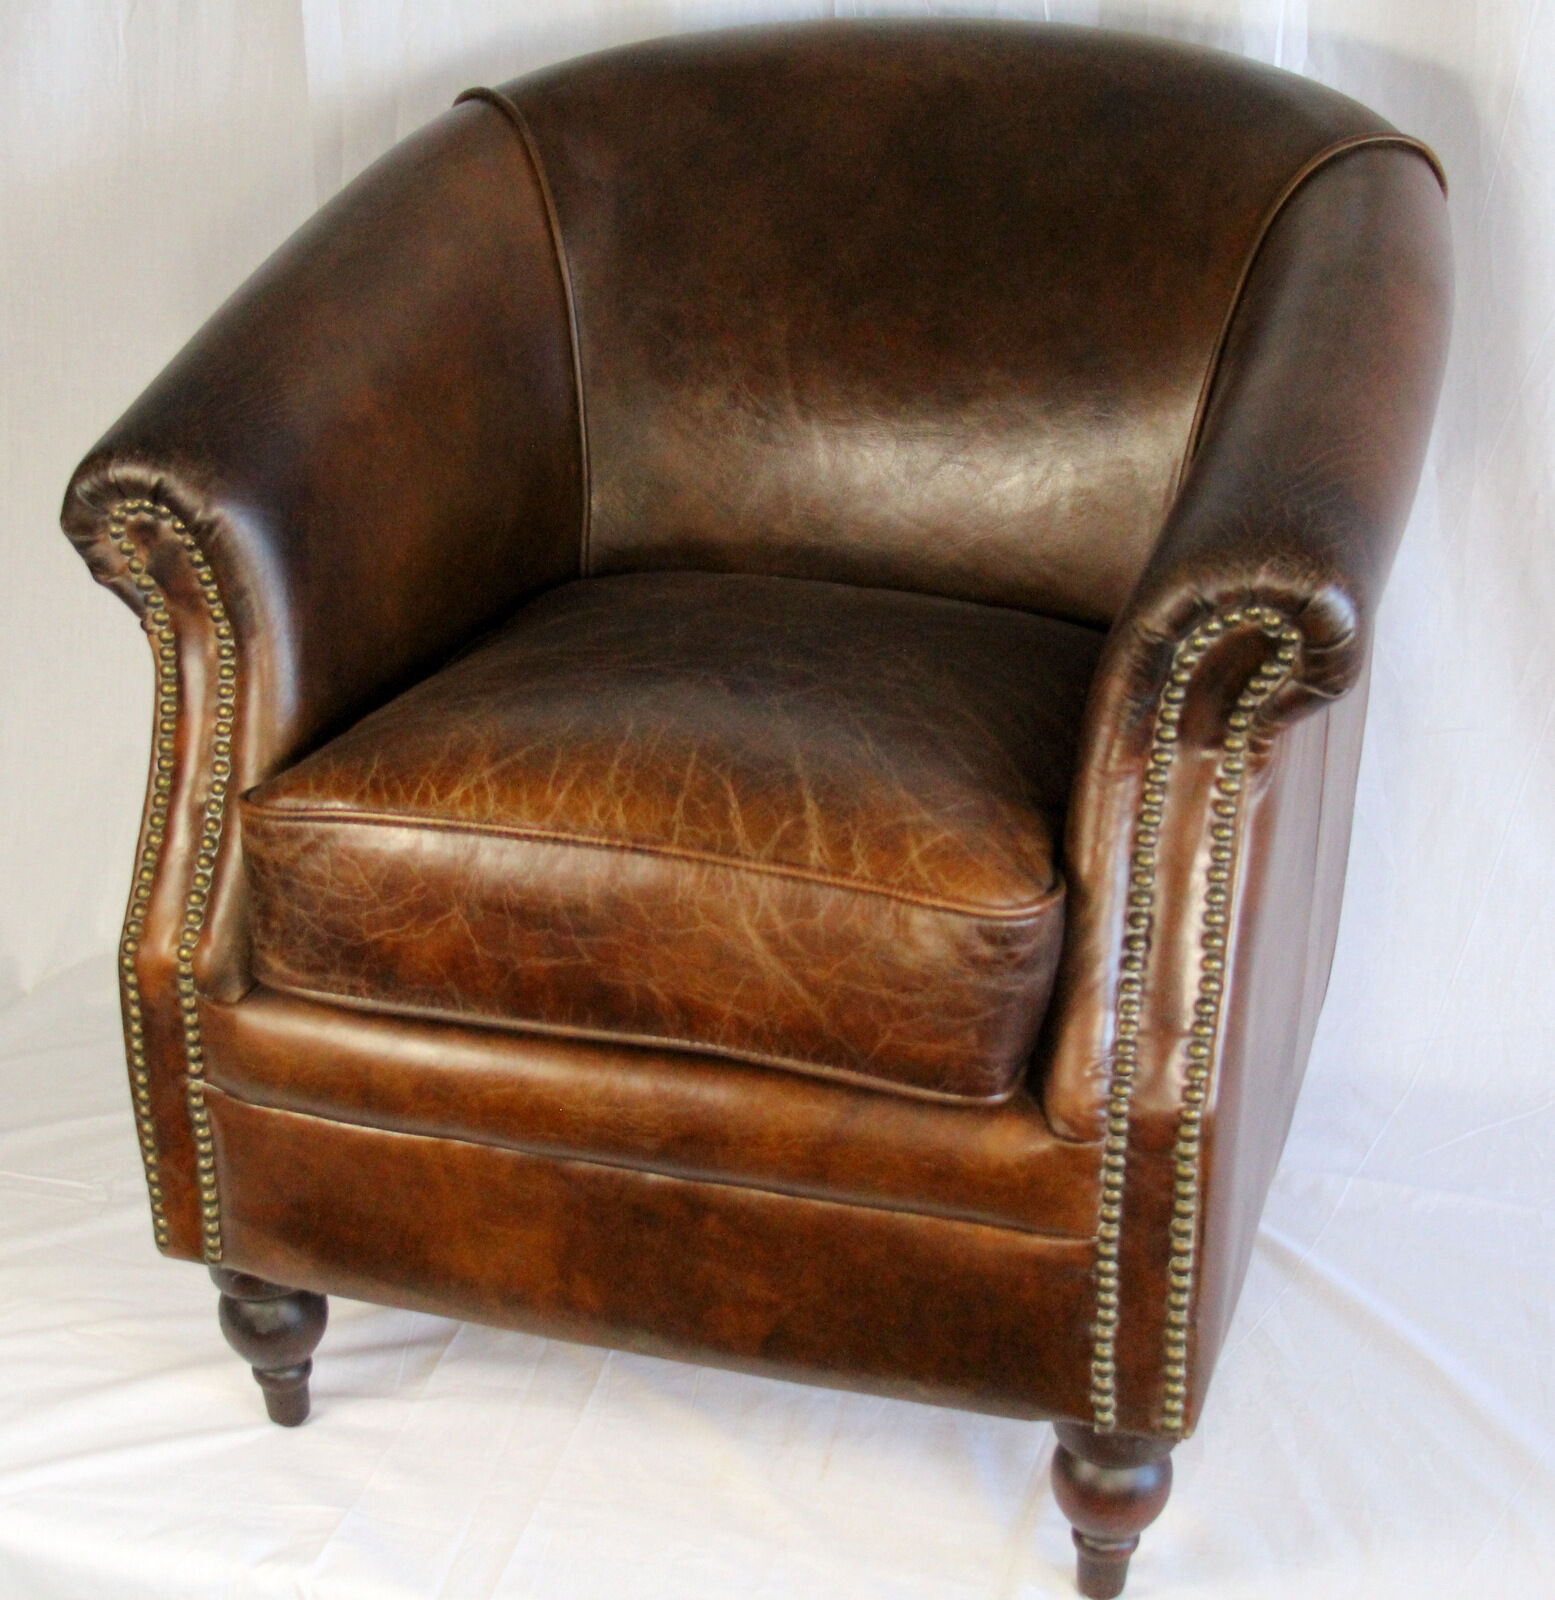 27 034 Wide Club Arm Chair Vintage Brown Cigar Italian ...